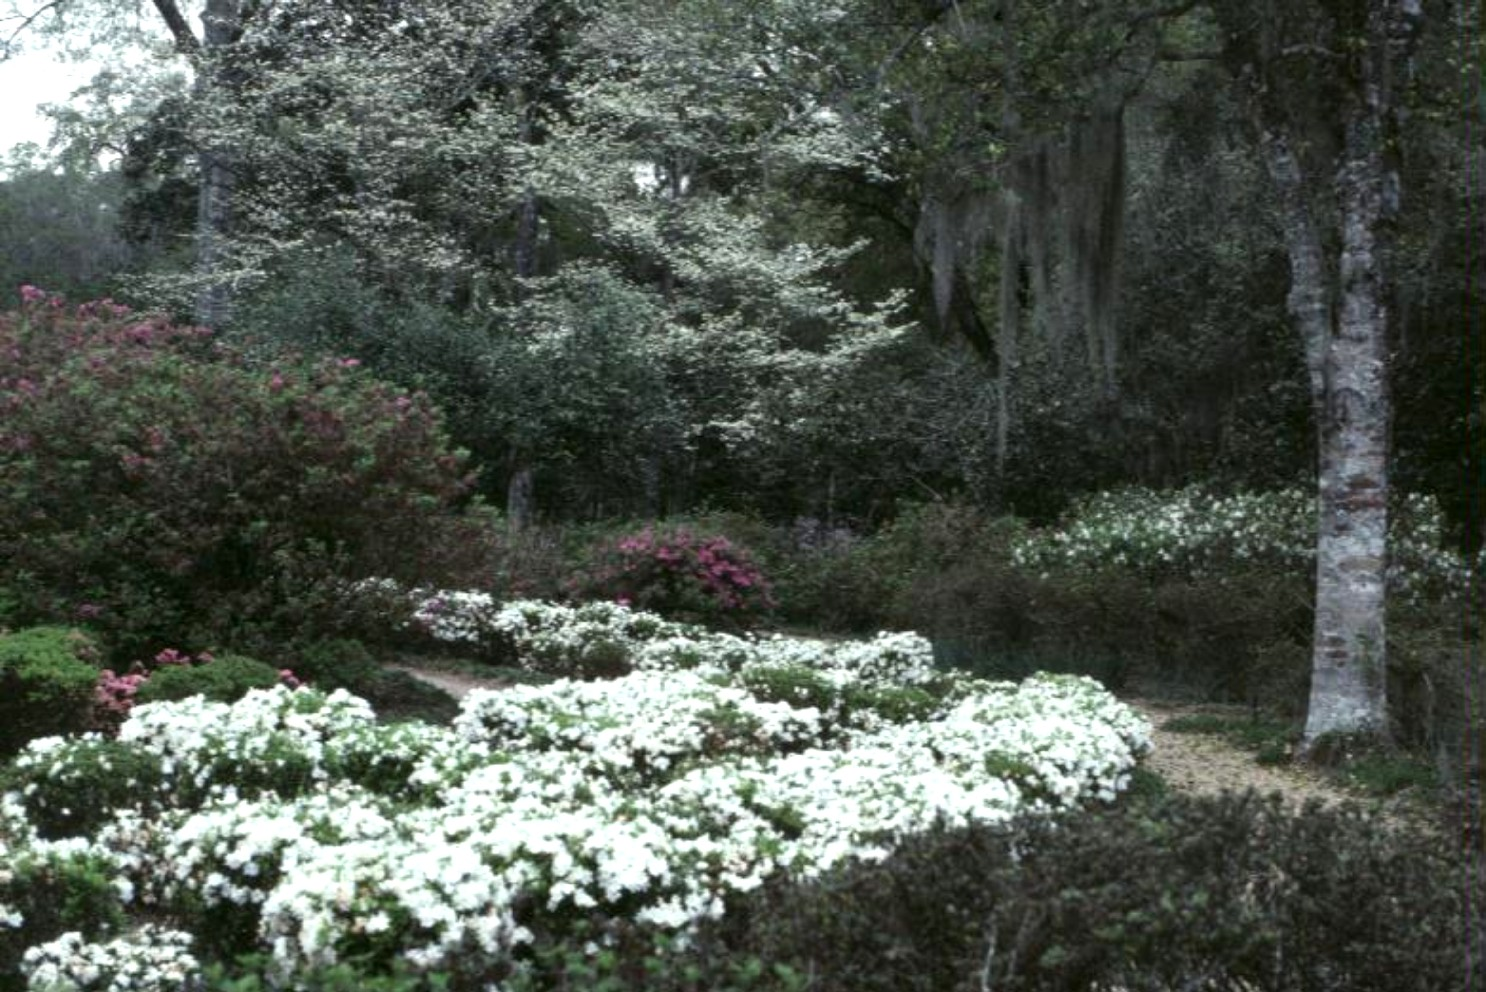 Rhododendron 'Snow'  / Rhododendron 'Snow'